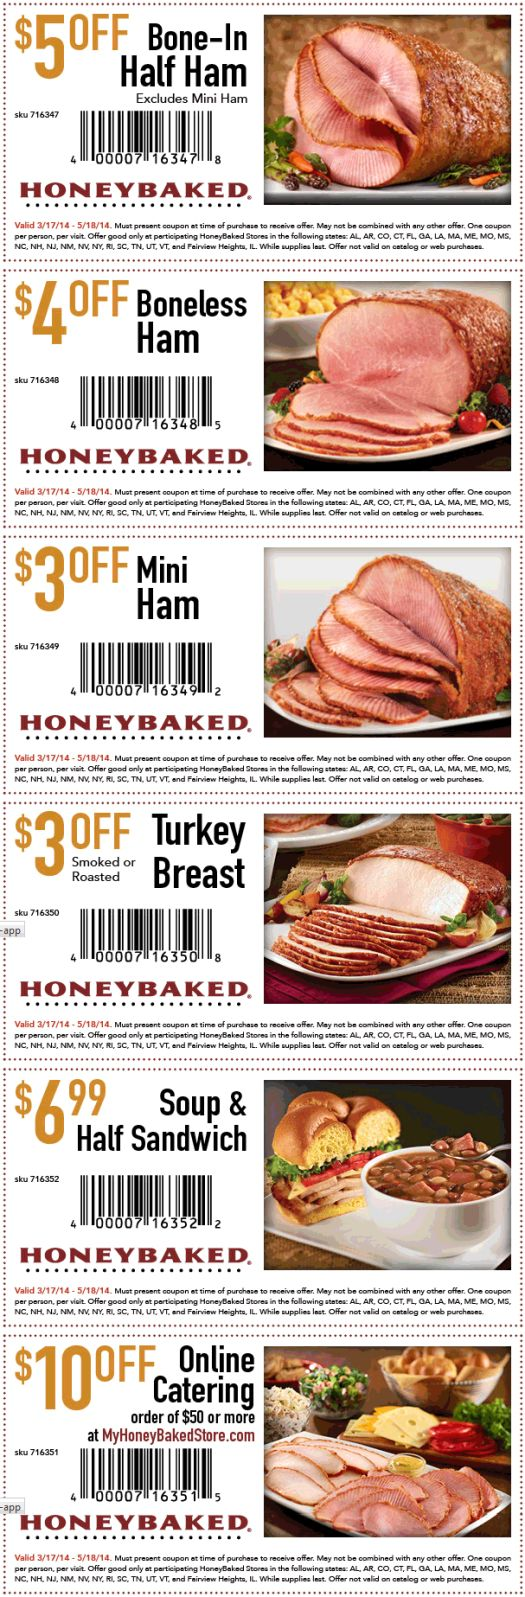 image about Honey Baked Ham Printable Coupons identified as Coupon honey - 6 02 discount codes